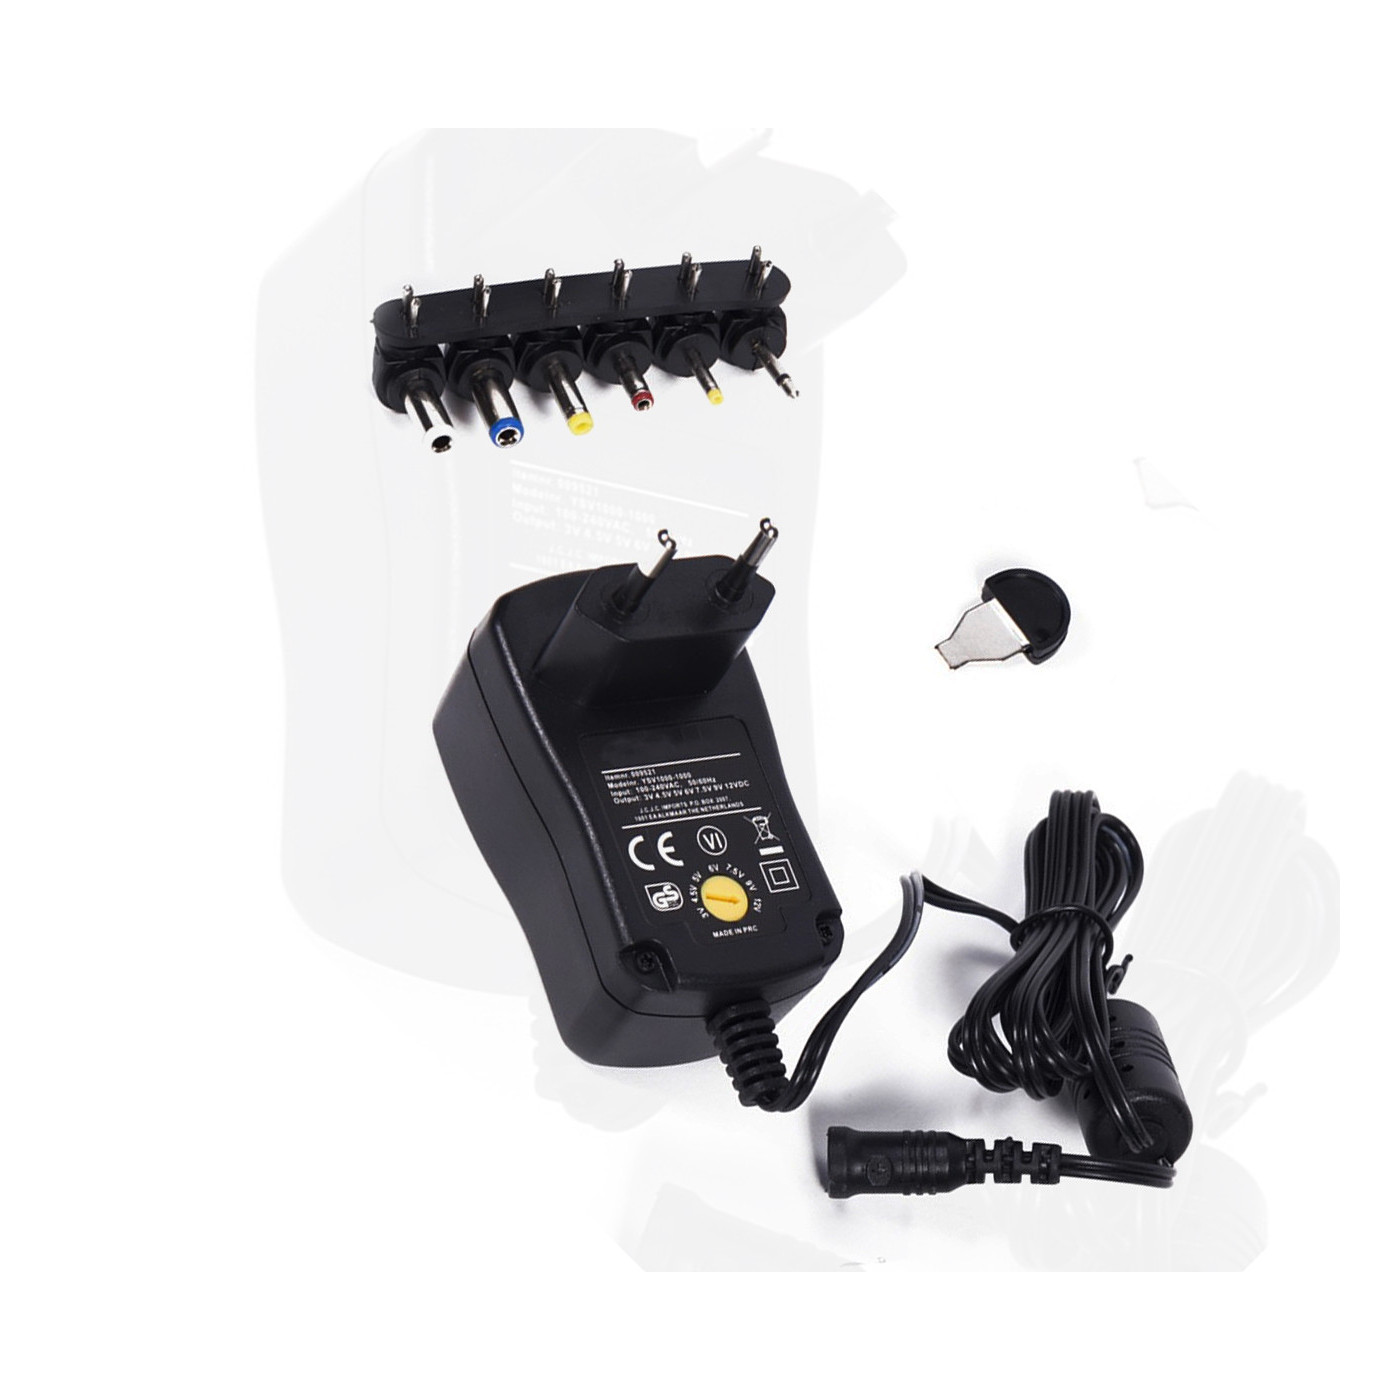 Universal adapter from 230V (AC) to 3.0-12V (DC)